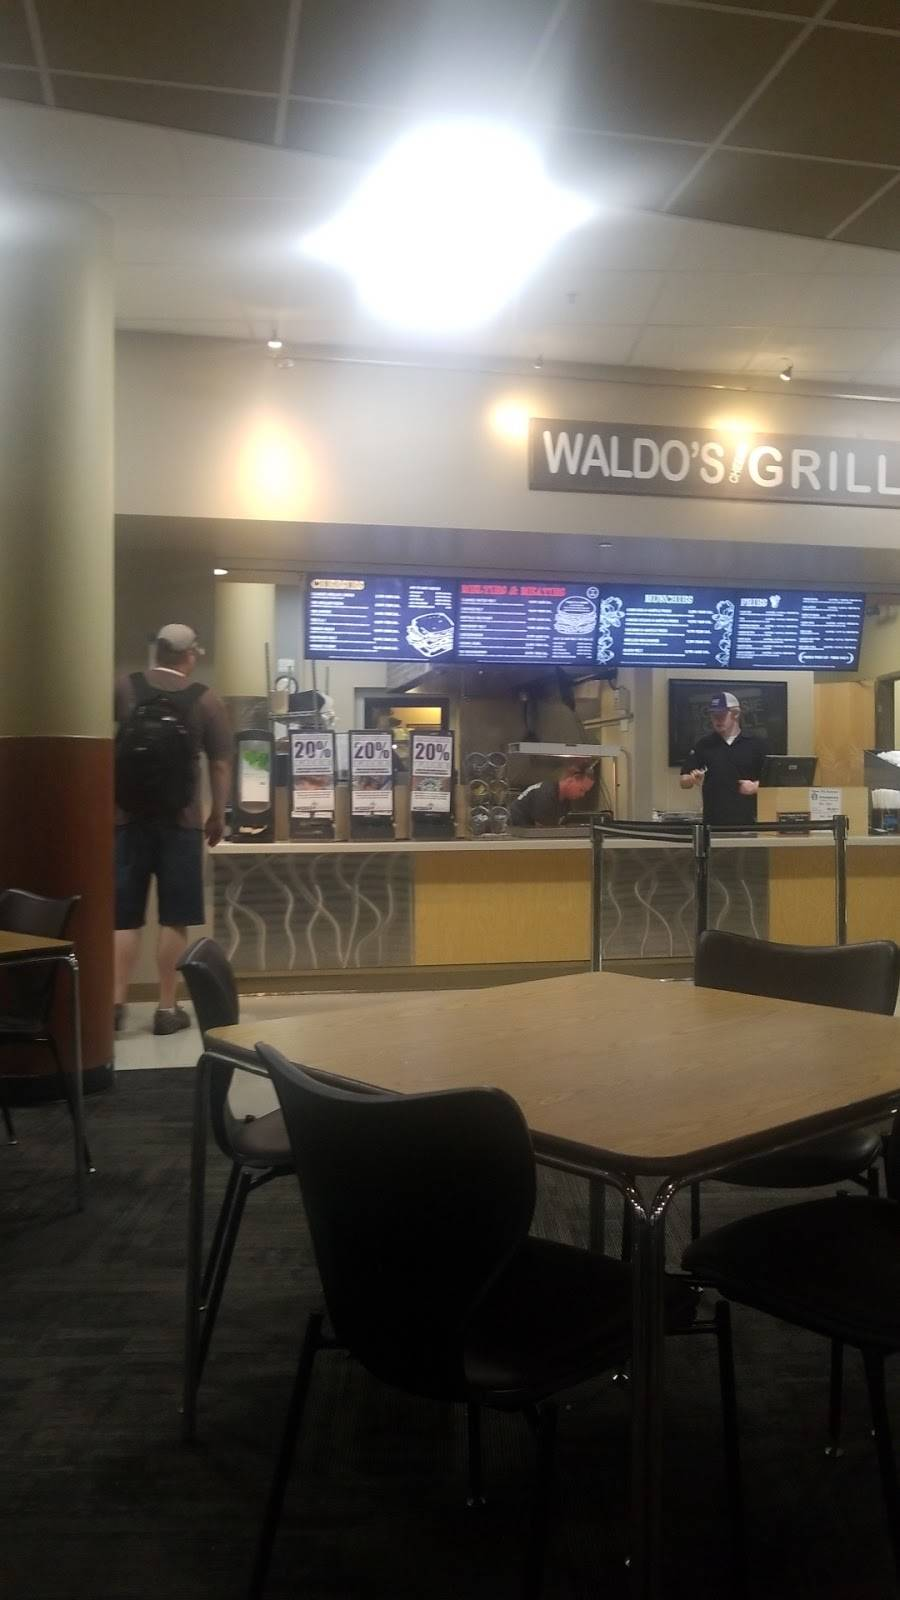 Waldos Cheesie Grill | restaurant | 3910 W Campus Dr, Ogden, UT 84408, USA | 8016266323 OR +1 801-626-6323